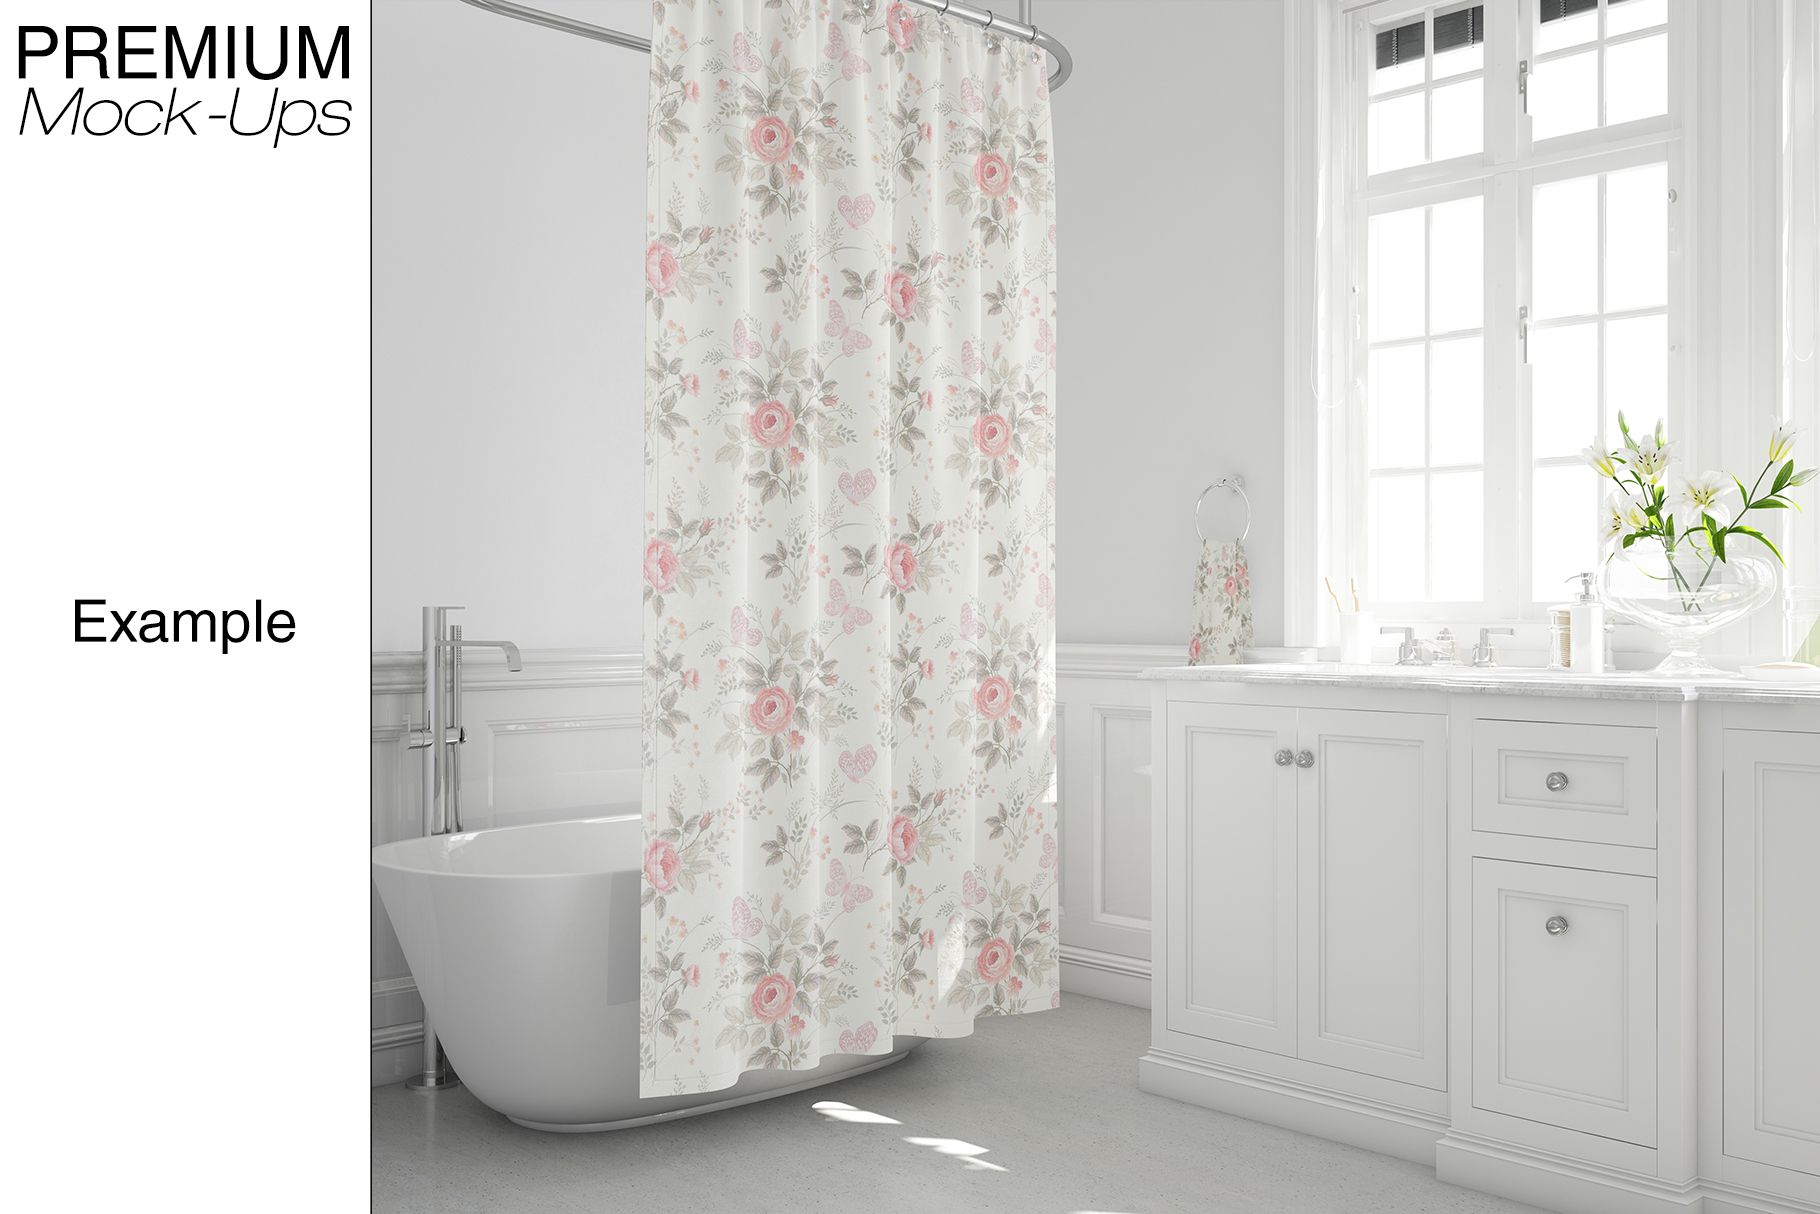 Bath Curtain Mockup Pack example image 17